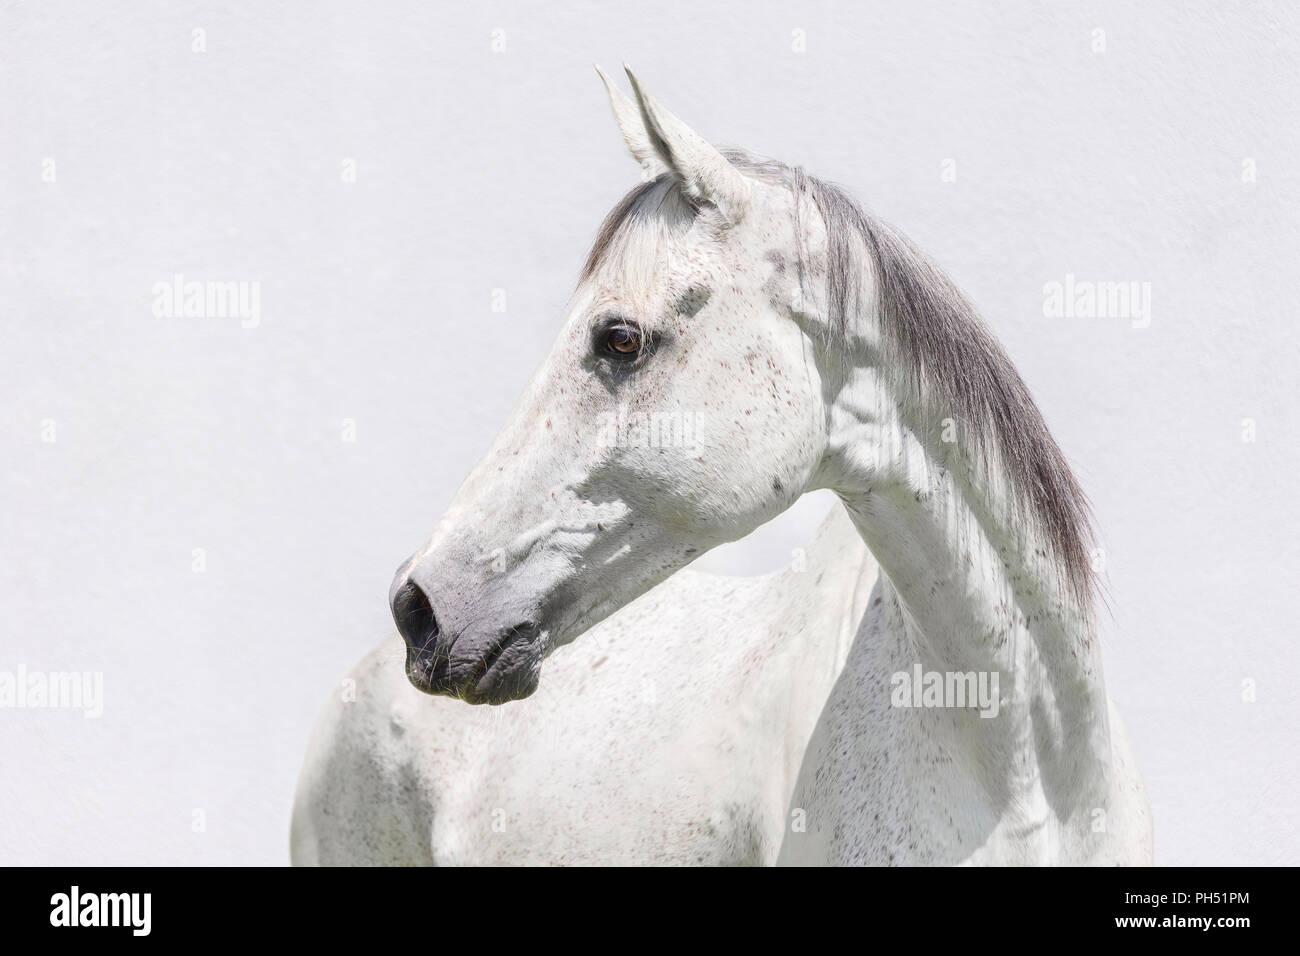 Thoroughbred. Portrait of gray gelding, seen against a white background. Austria - Stock Image